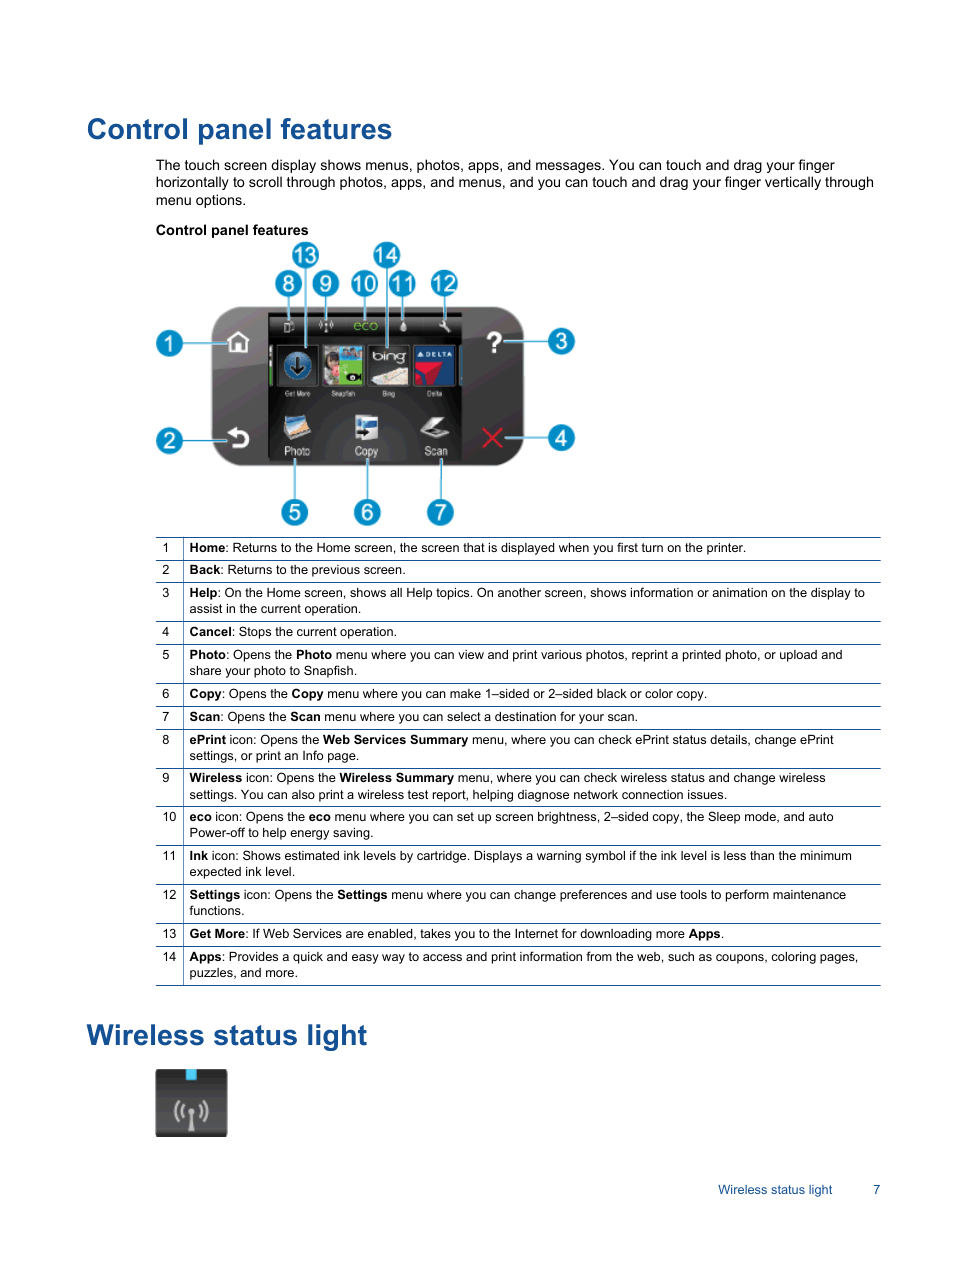 Control Panel Features Wireless Status Light Control